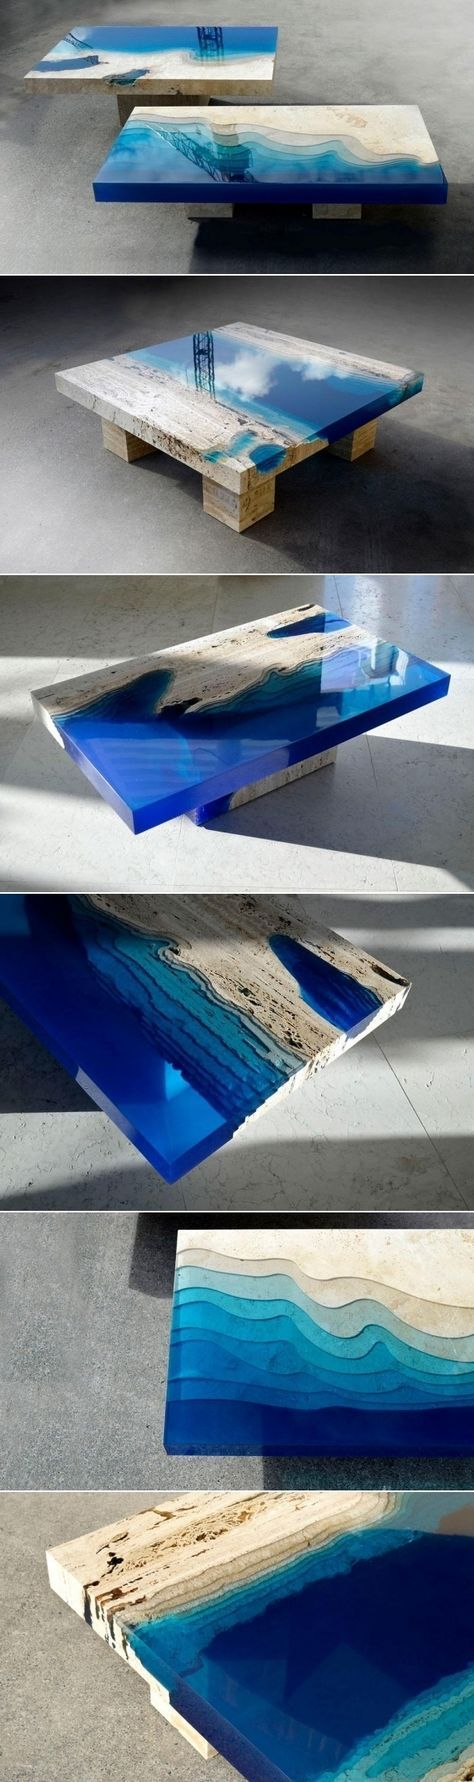 Wooden Tables Embedded With Glass Rivers and Lakes By Greg Klassen ...